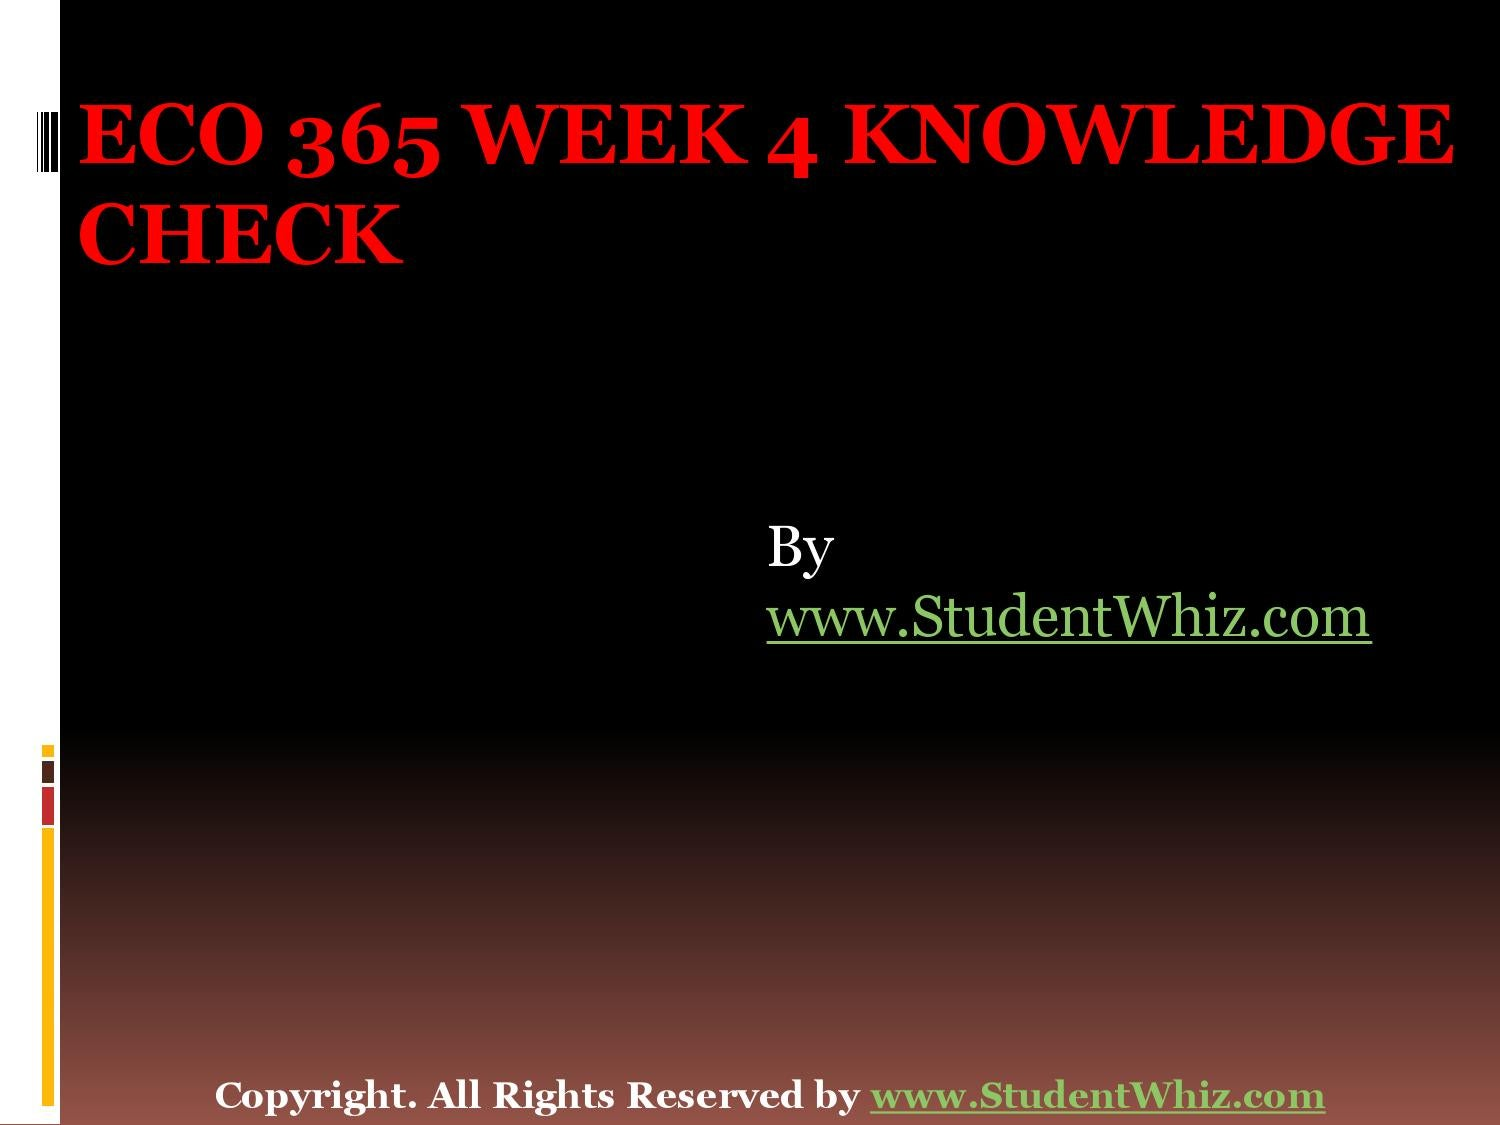 eco 365 week 1 knowledge check Wwwstudentwhizcom the eco 365 week 1 knowledge check is an appropriate case of what we experience everyday as part of our professional lives irrespective of.